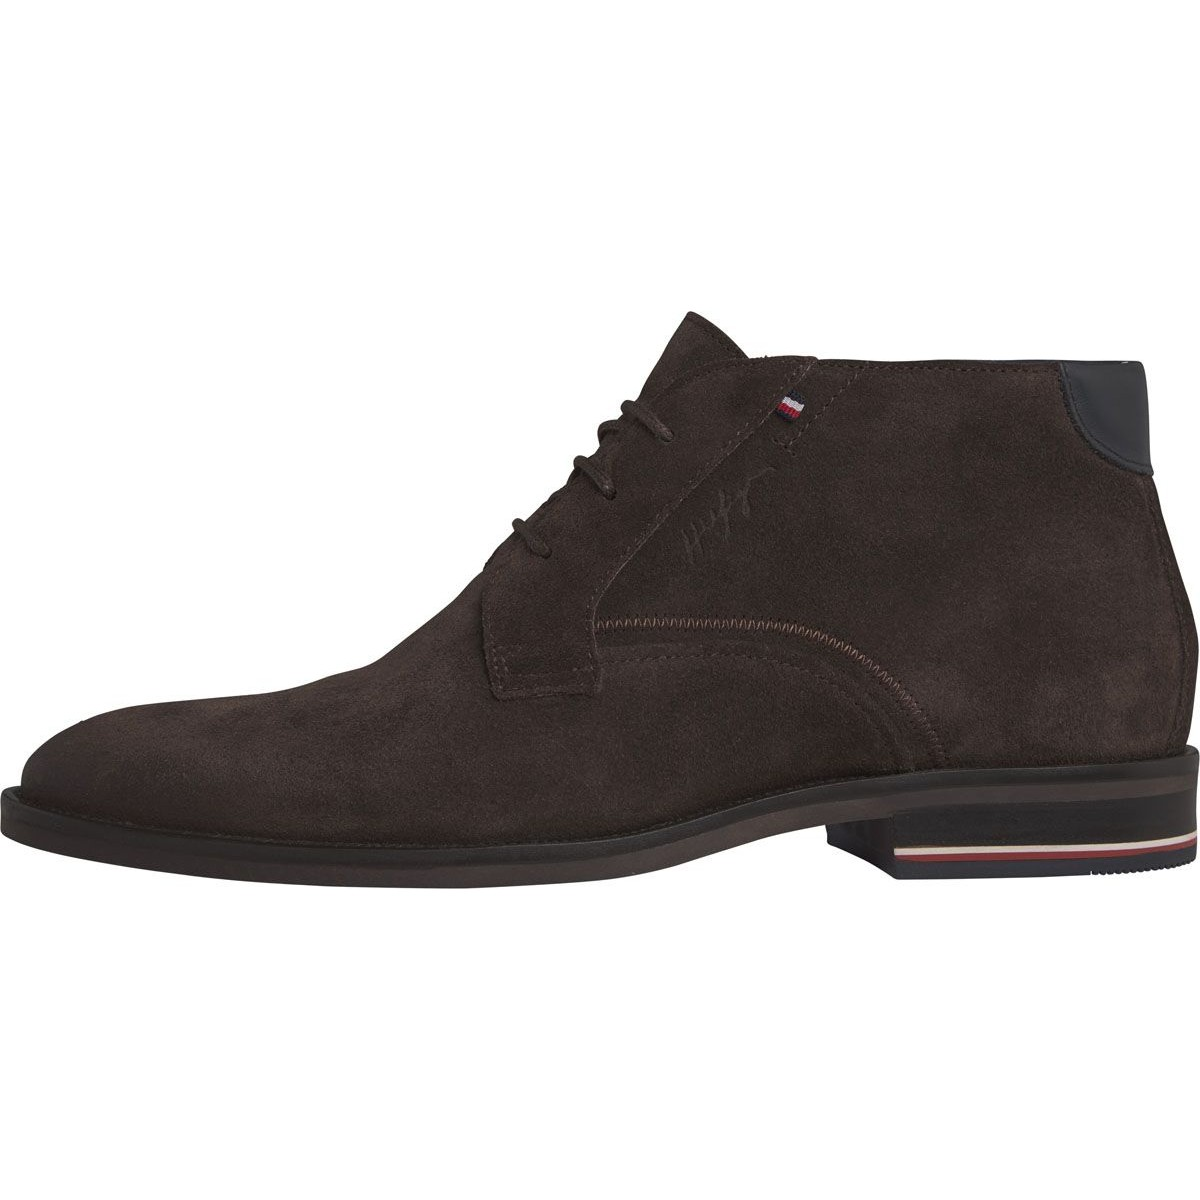 Bottines signature en daim à lacets by Tommy Hilfiger